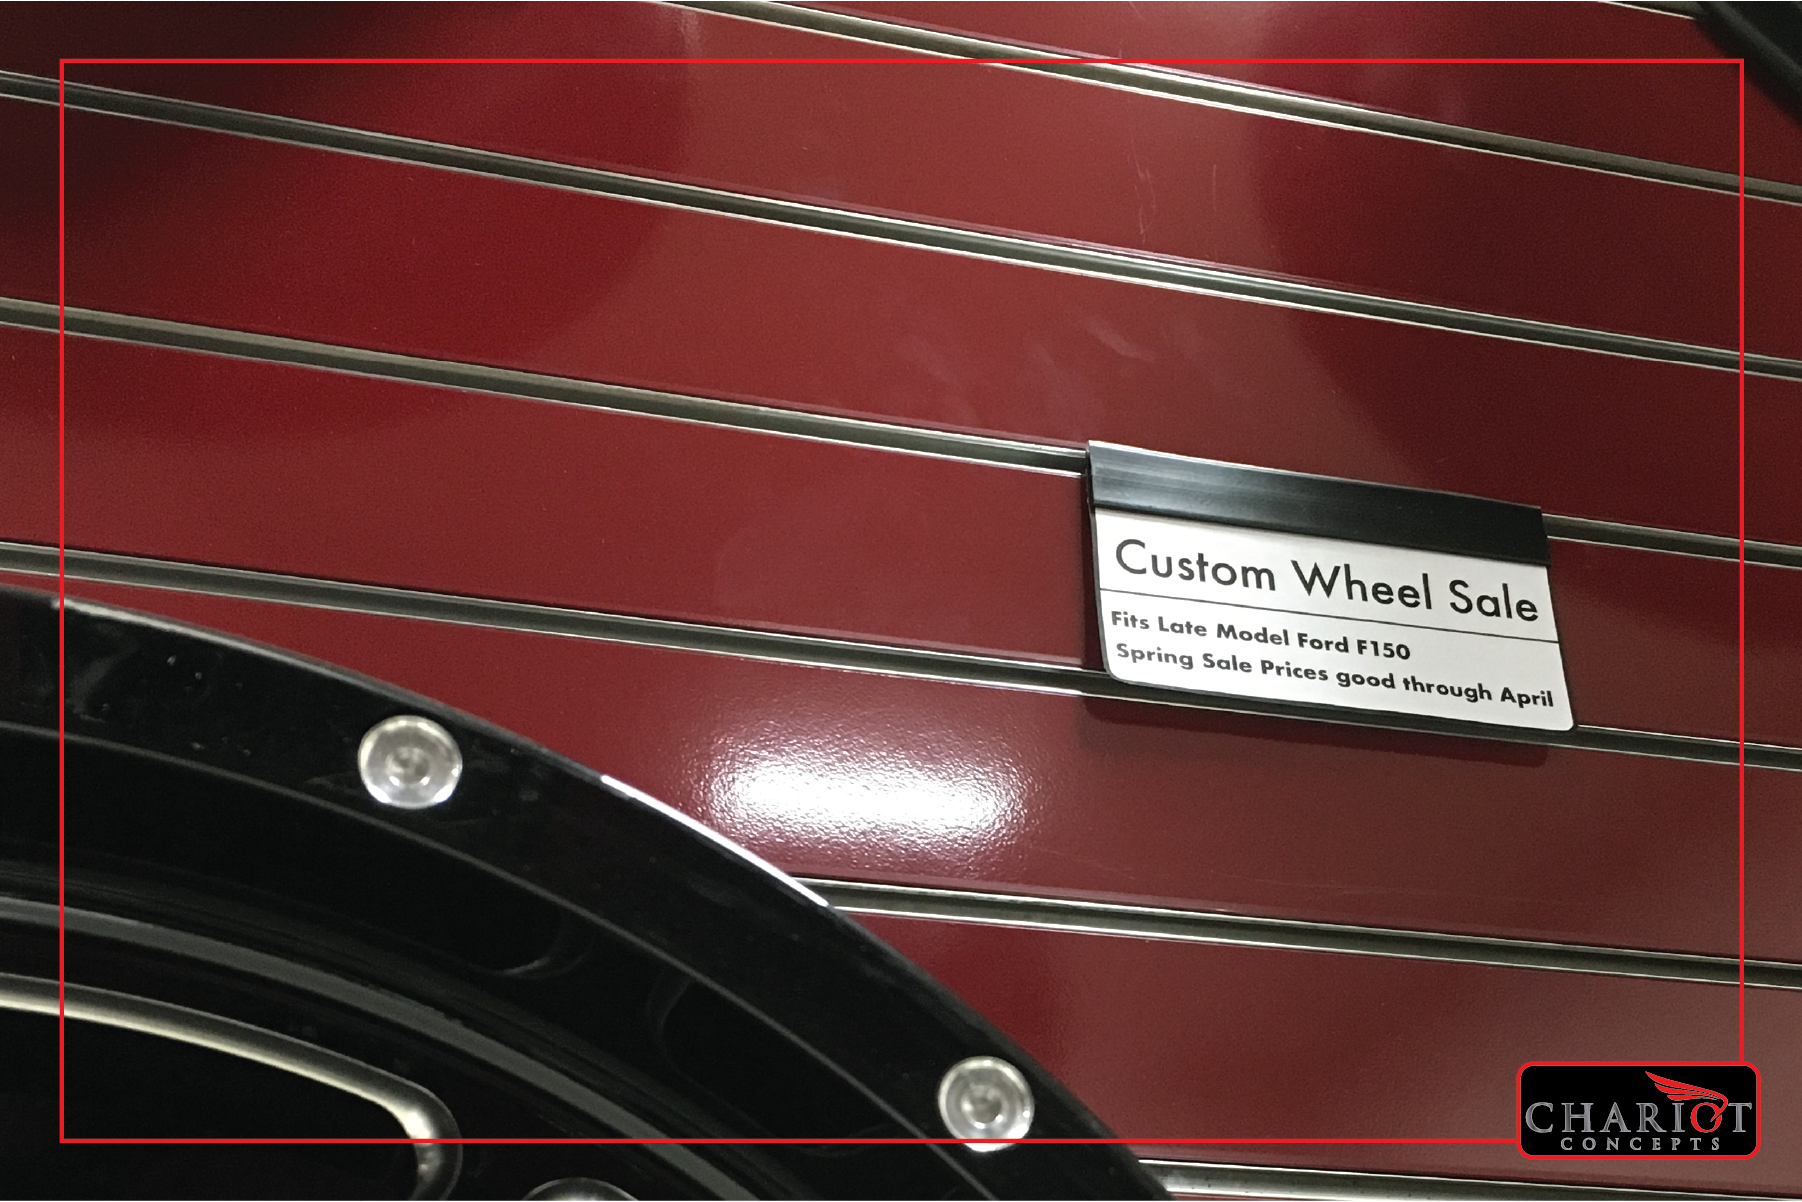 This example is plain, but it illustrates the way information can be conveyed to customers on a wall of wheels or tires. Want to advertise your credit program? Want to introduce a new custom wheel line? Just placing the product on the wall is not enough. Tell your customers what they fit, how to buy, what they cost. Don't make them guess!